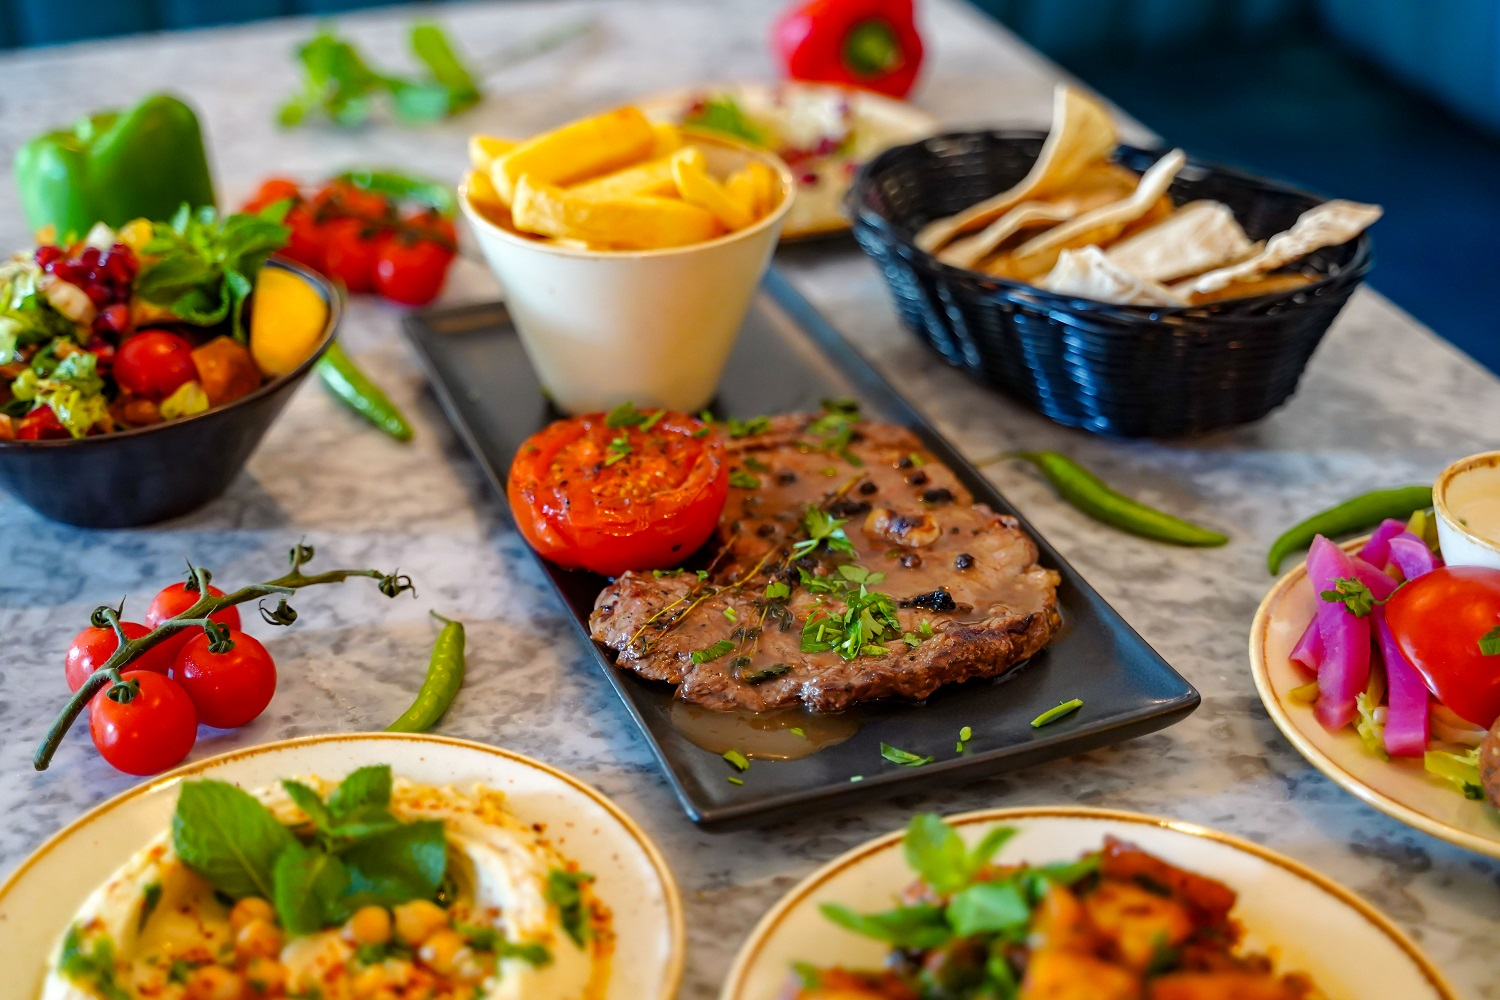 Steak and tapas dishes